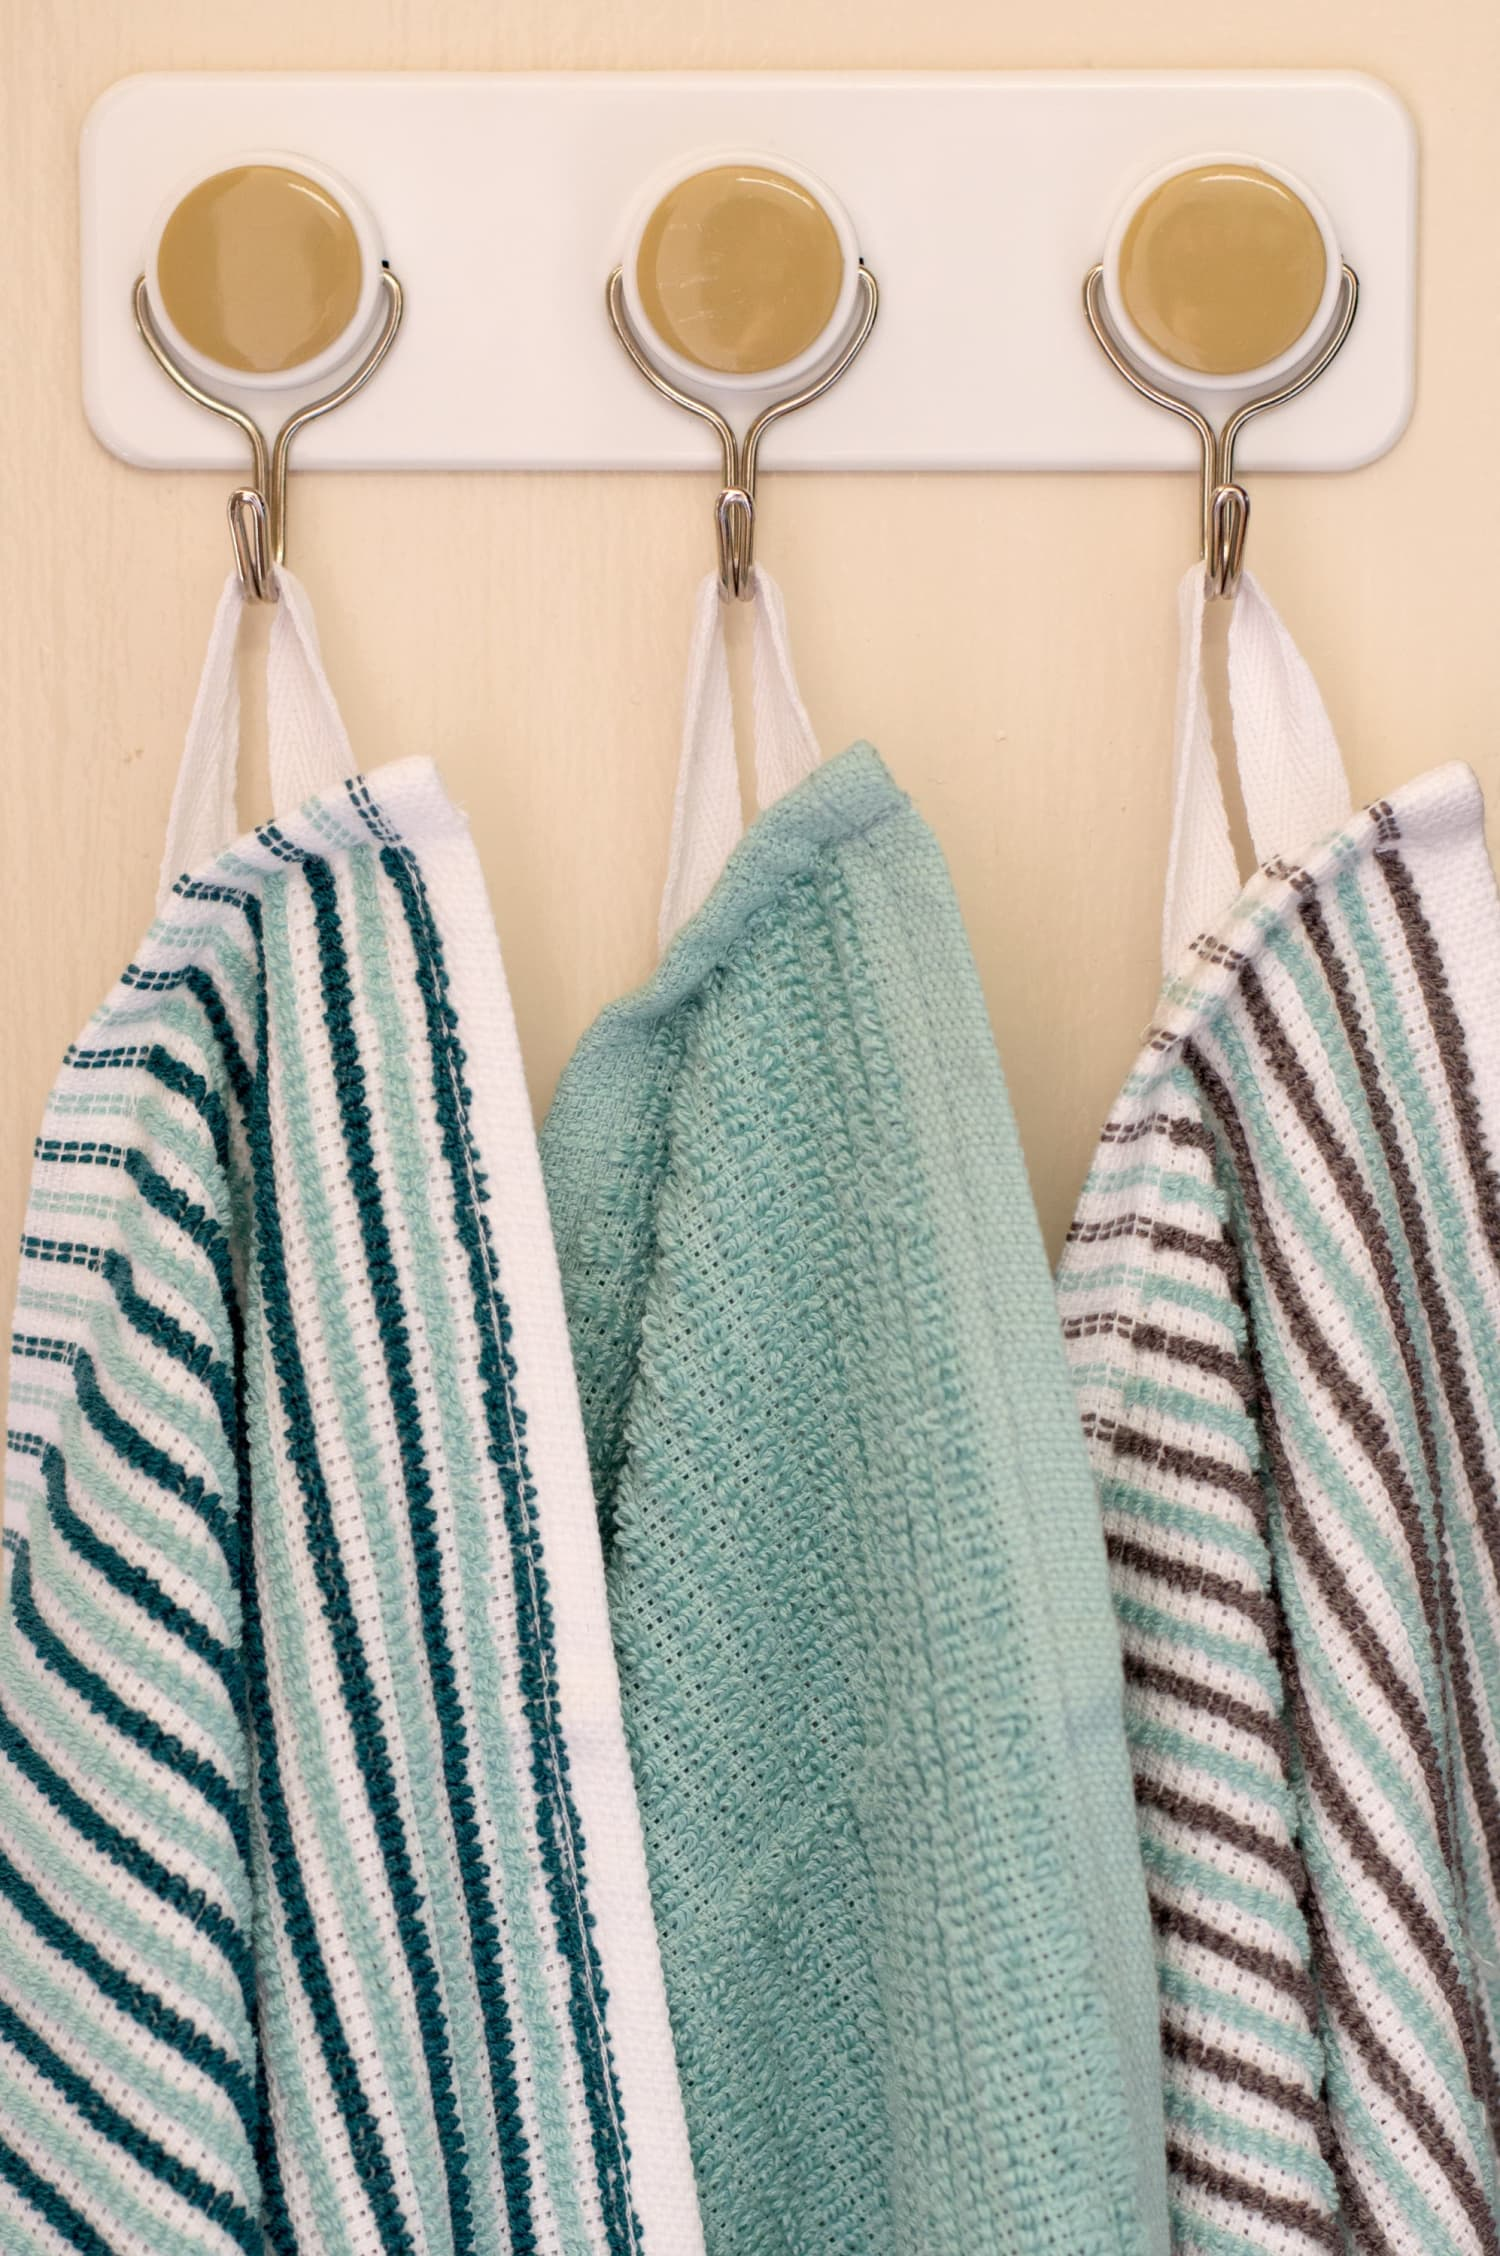 How To Add Loops to Dishtowels for Hanging | Kitchn